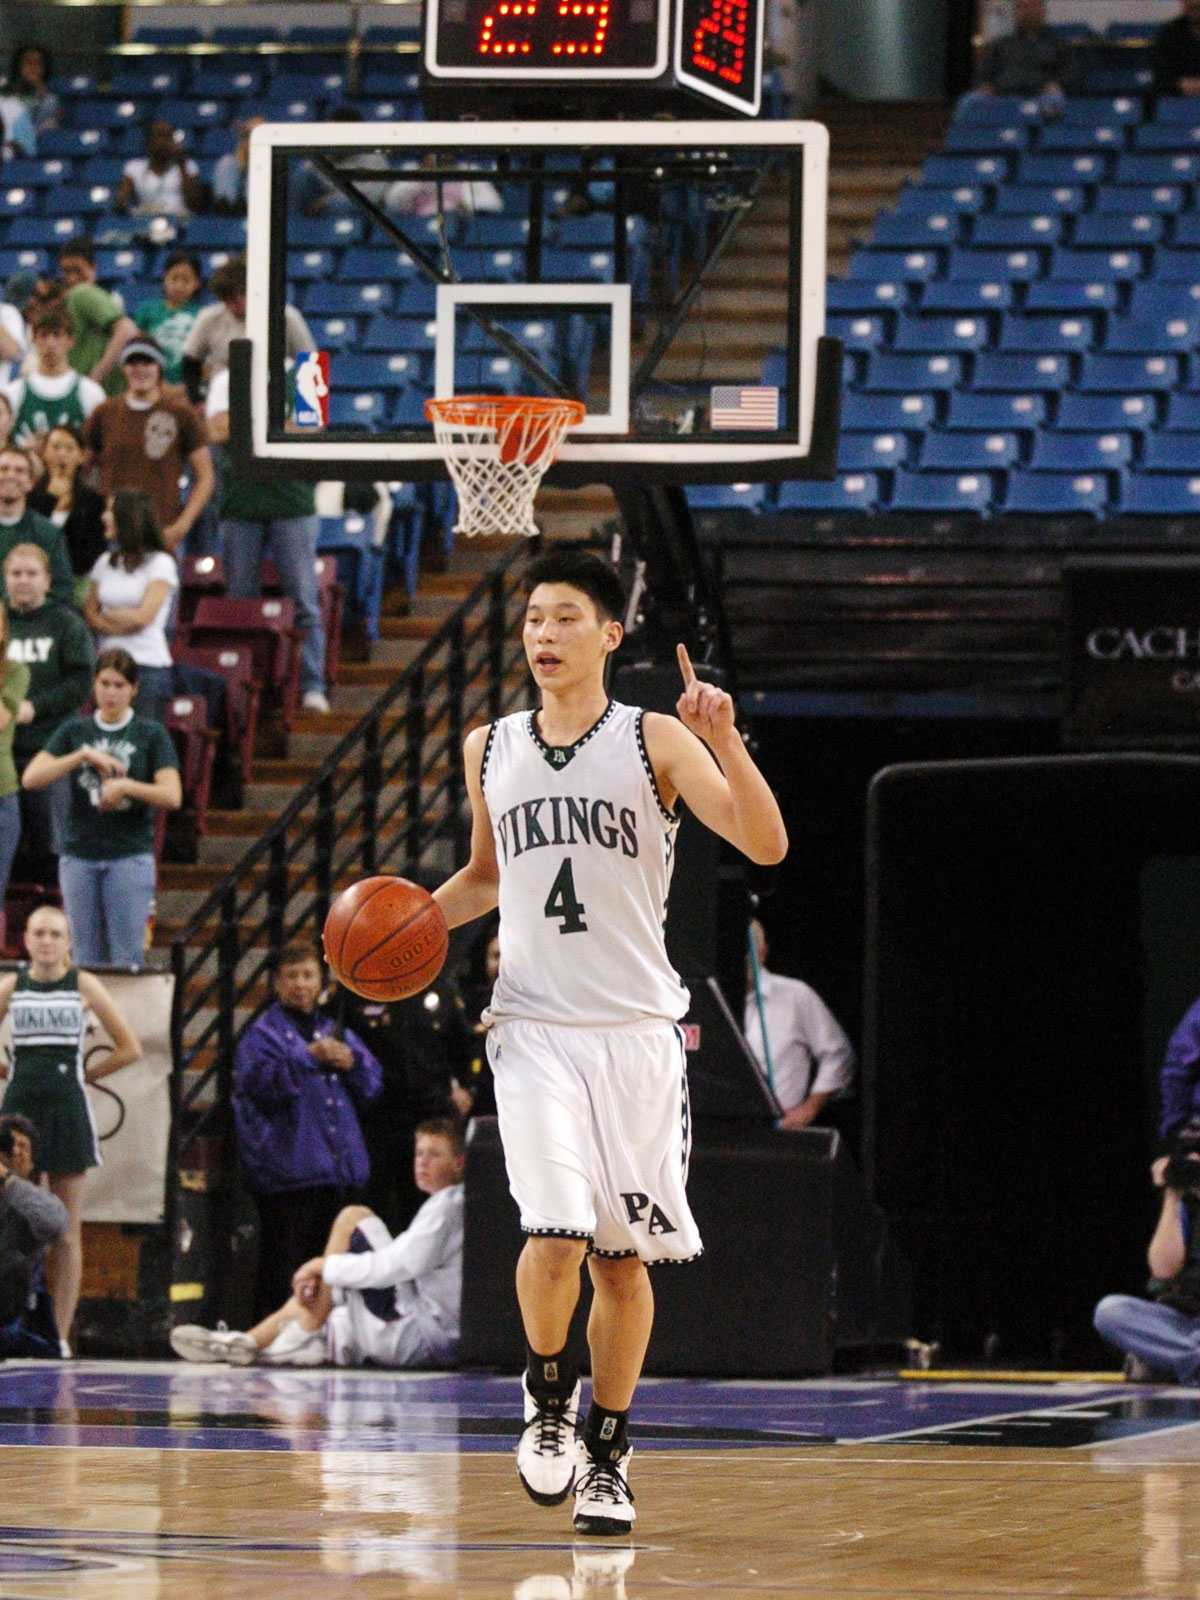 Jeremy Lin Dunk In Middle School The viking magazine : roots of ... Jeremy Lin Dunk In Middle School